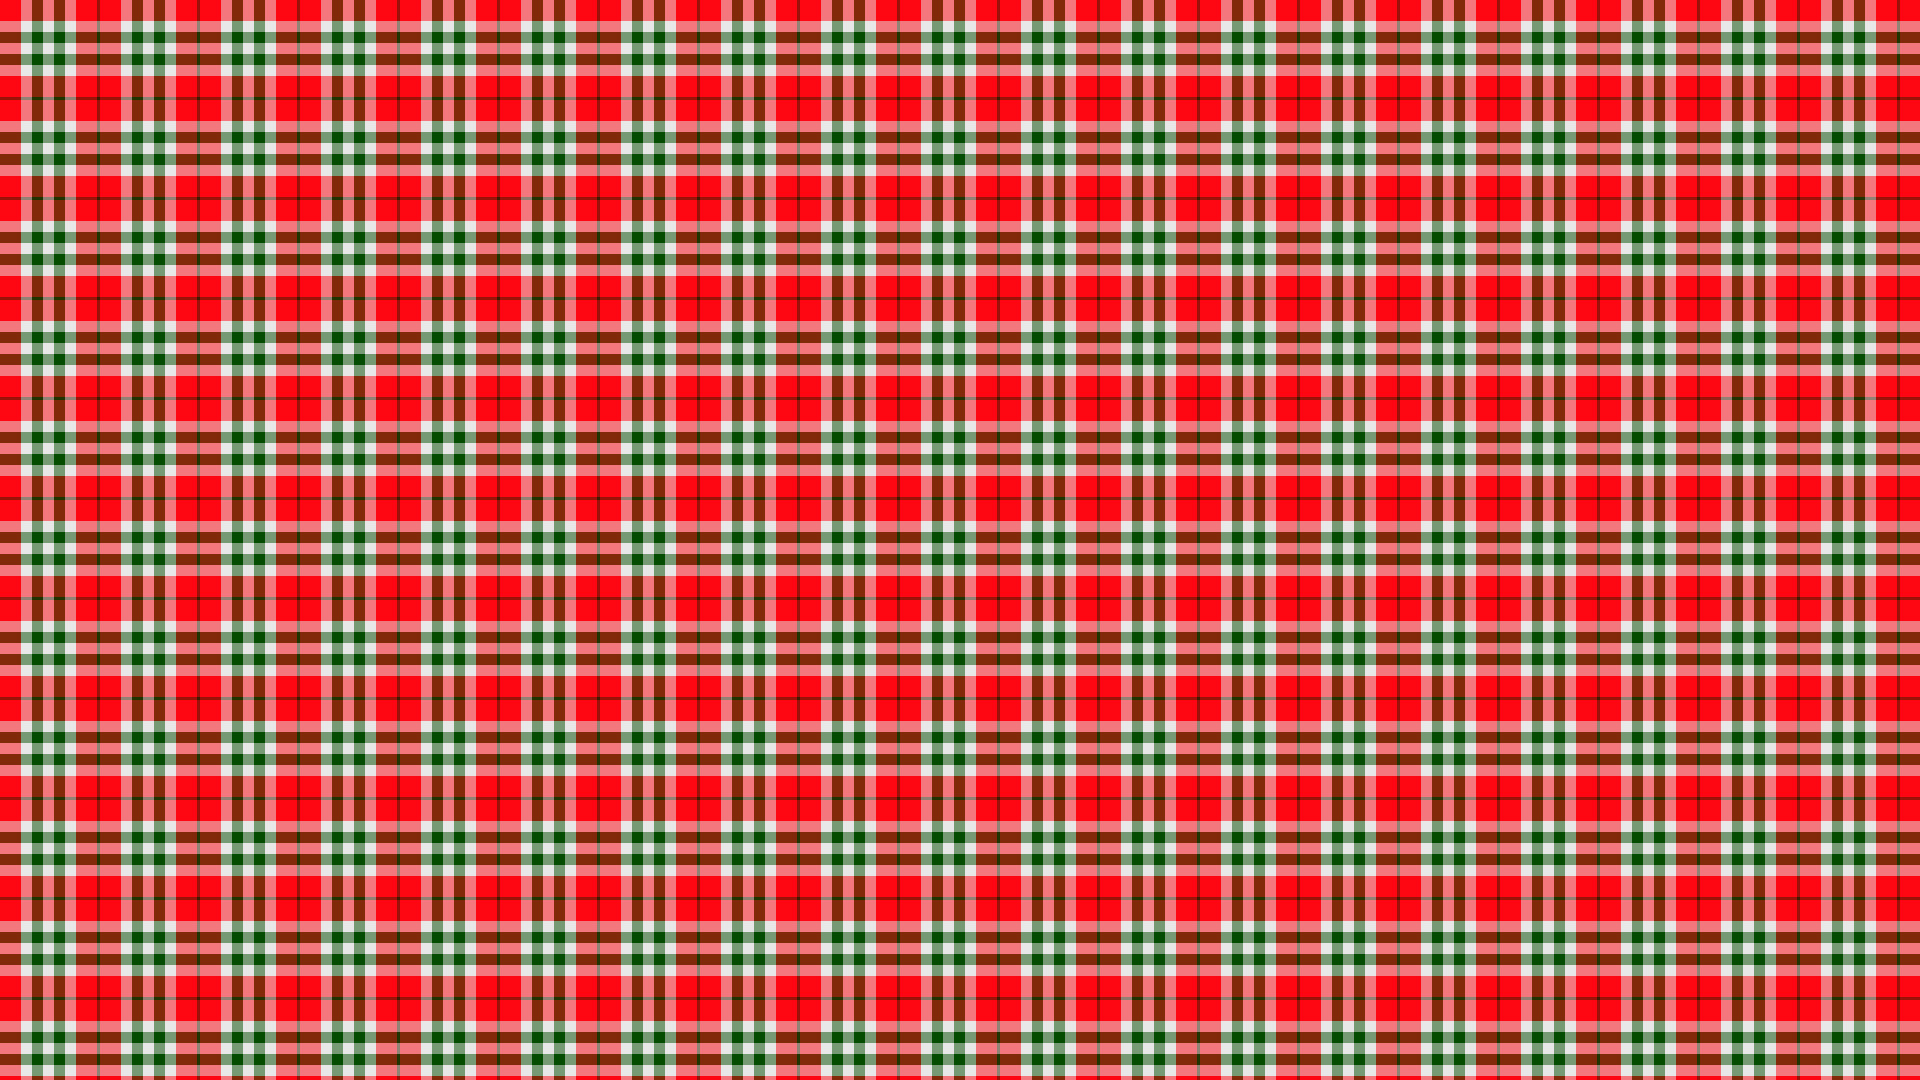 Country Print Backgrounds